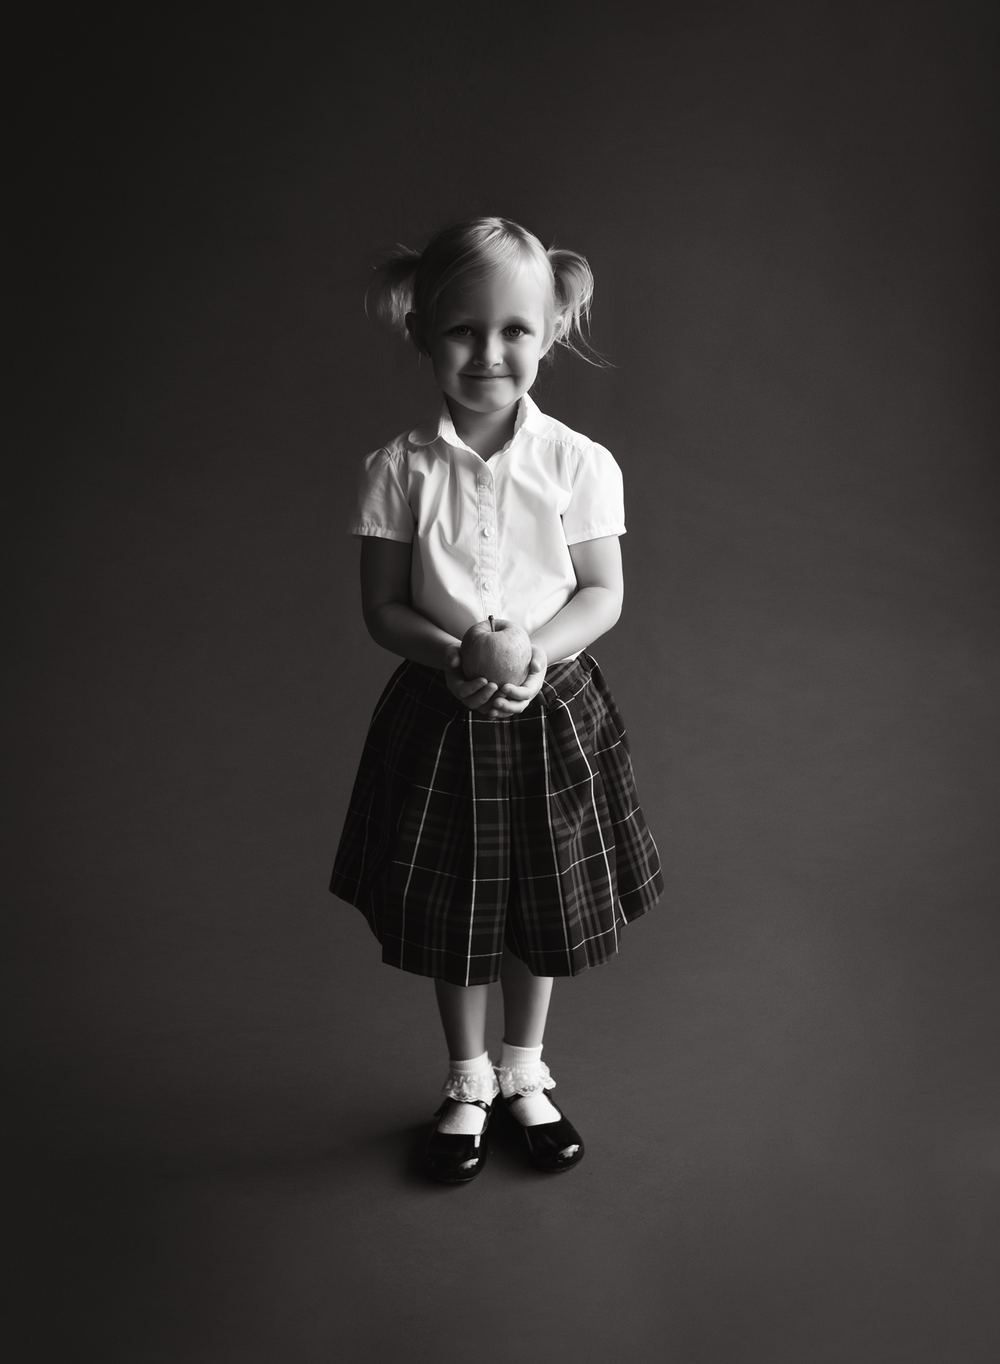 09 back to school girl child pre-k school uniform garage studio savage seamless thunder gray edmond ok photographer oklahoma city (2).png